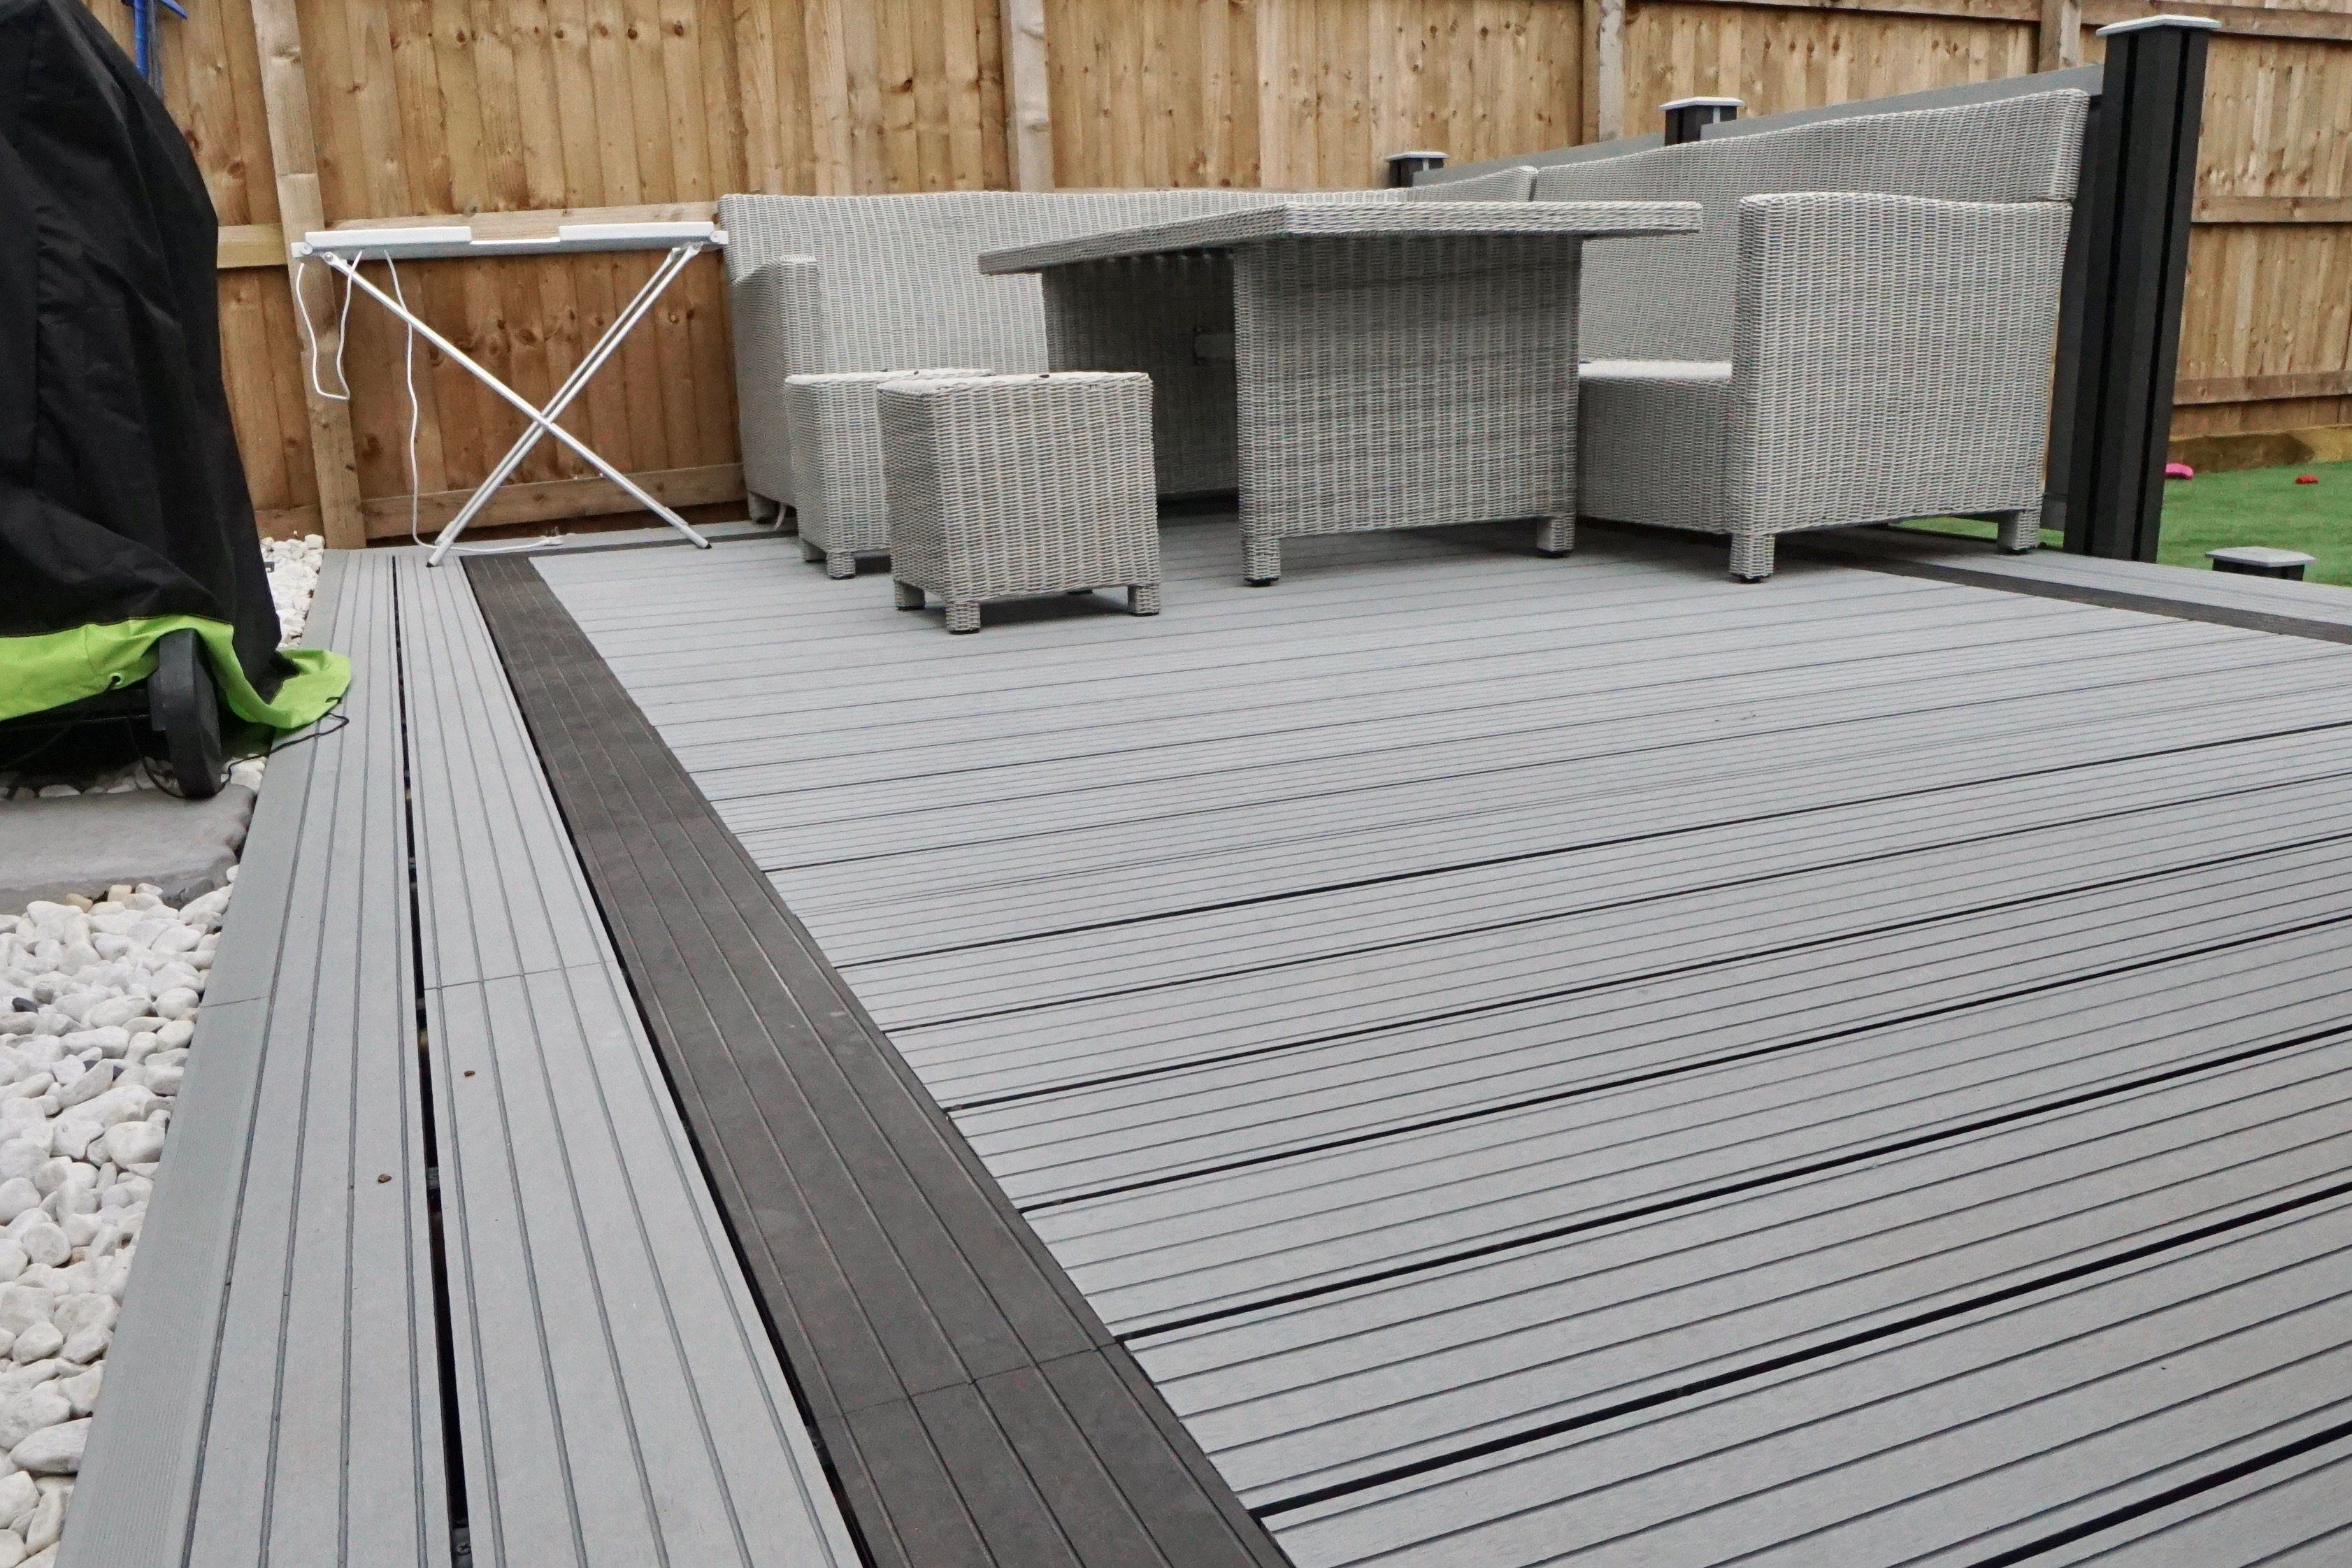 Trex Decking Uk >> Grey Composite Decking and Fencing - Paving Traders